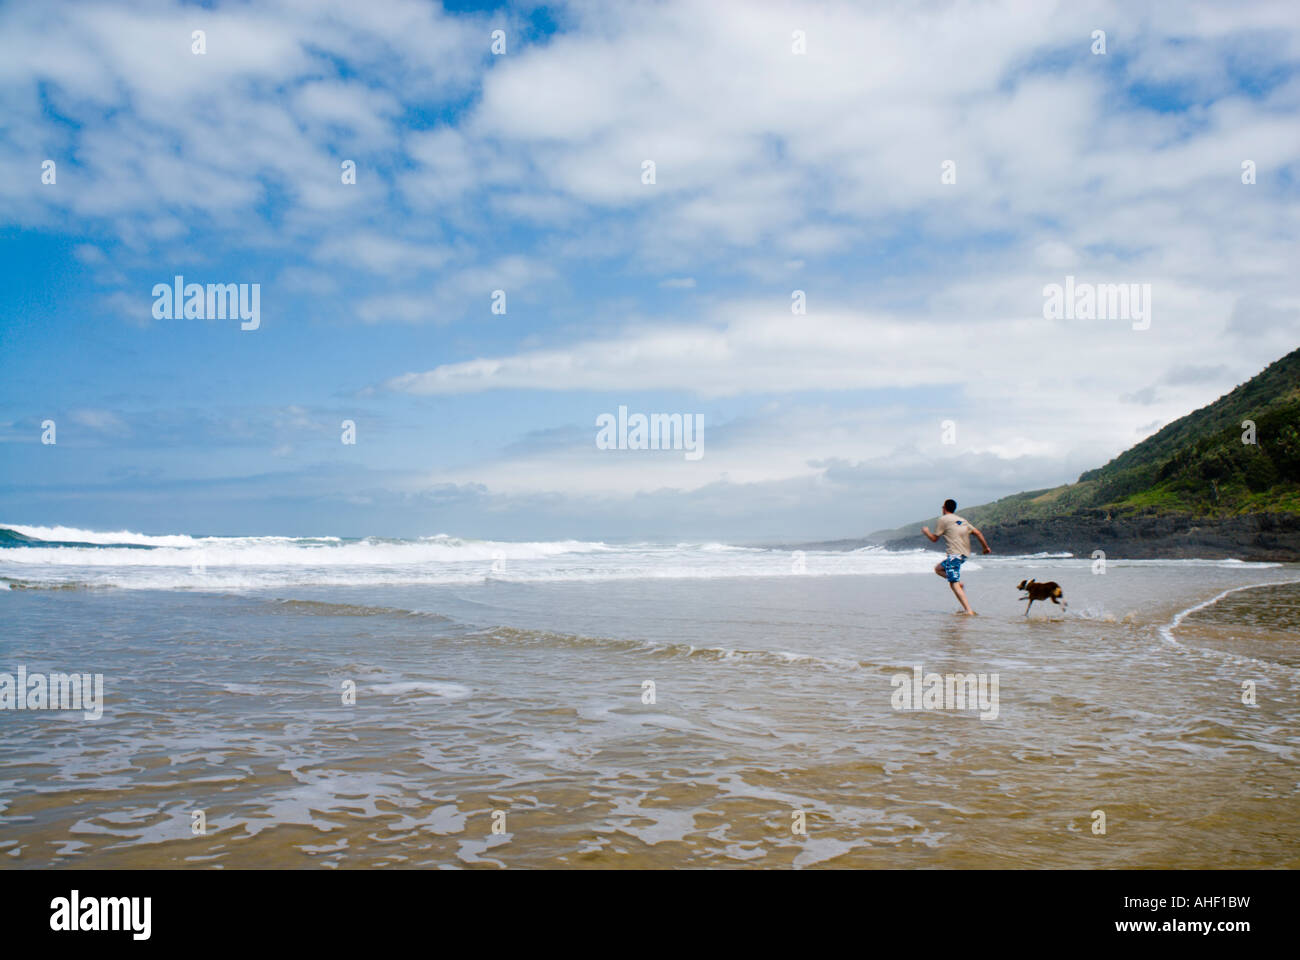 Male beach goer with dog at the seaside in Haga Haga, Eastern Cape, South Africa - Stock Image